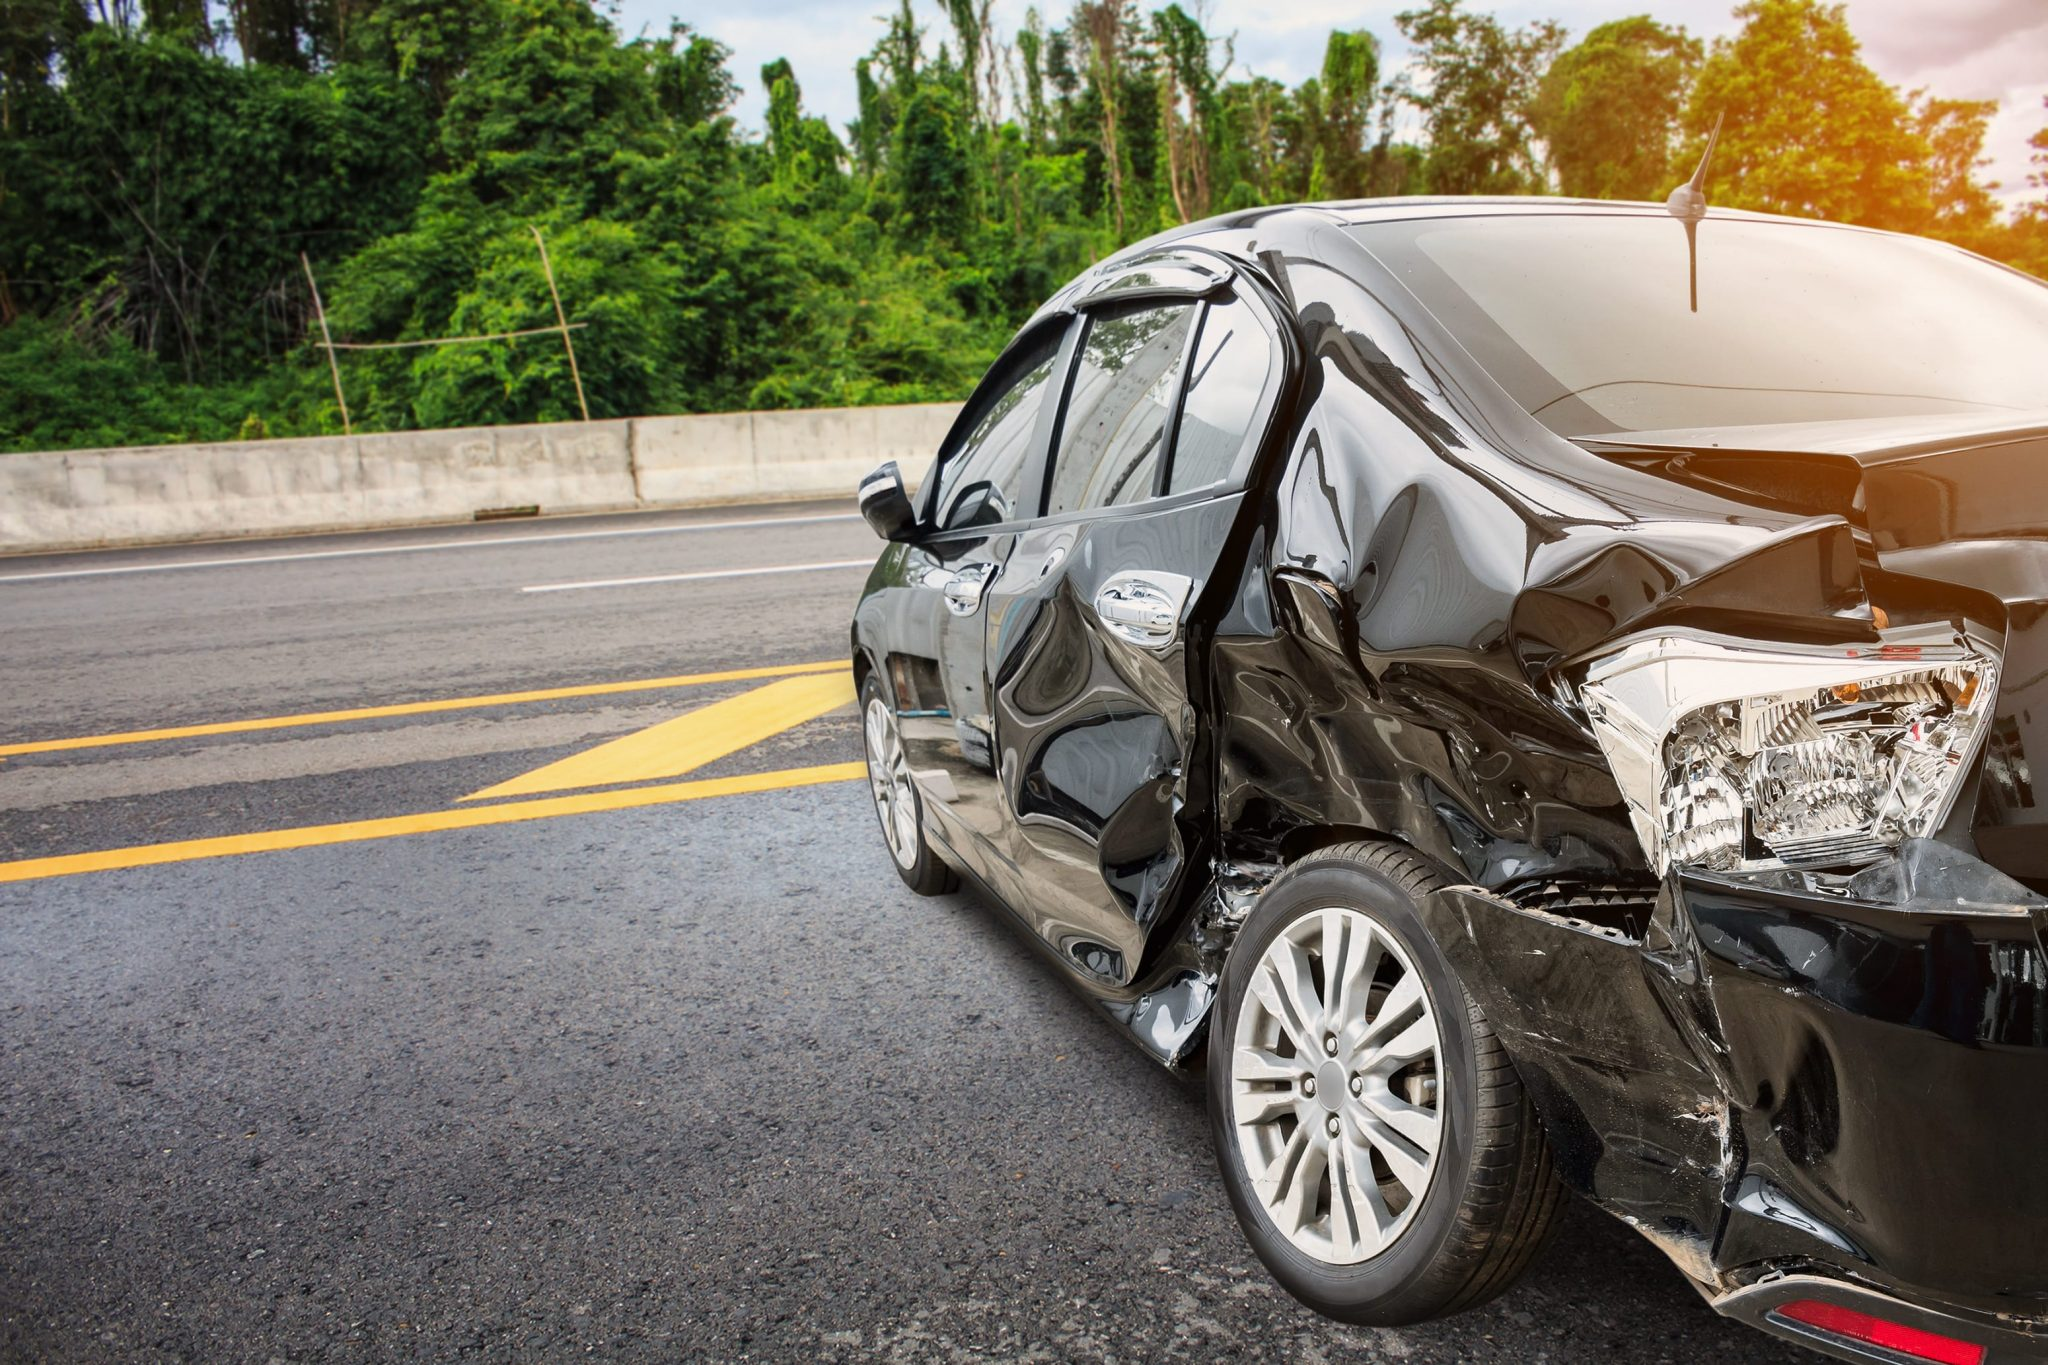 which types of cars have the most accidents